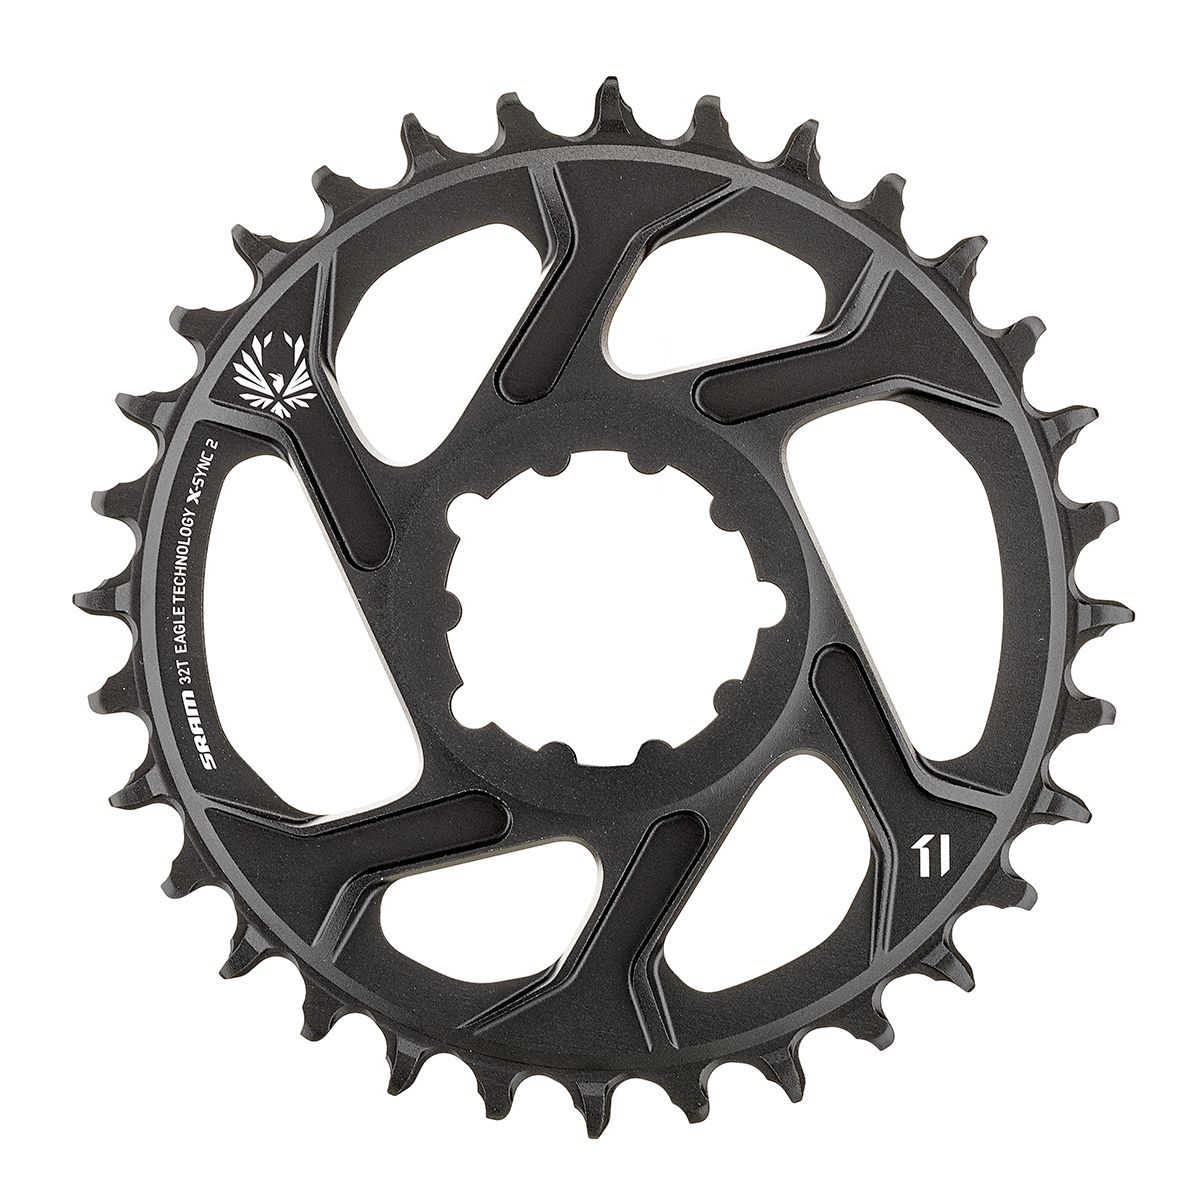 Eagle X-SYNC 2 Direct Mount Chainring Aluminium, 12 speed, 6mm Offset